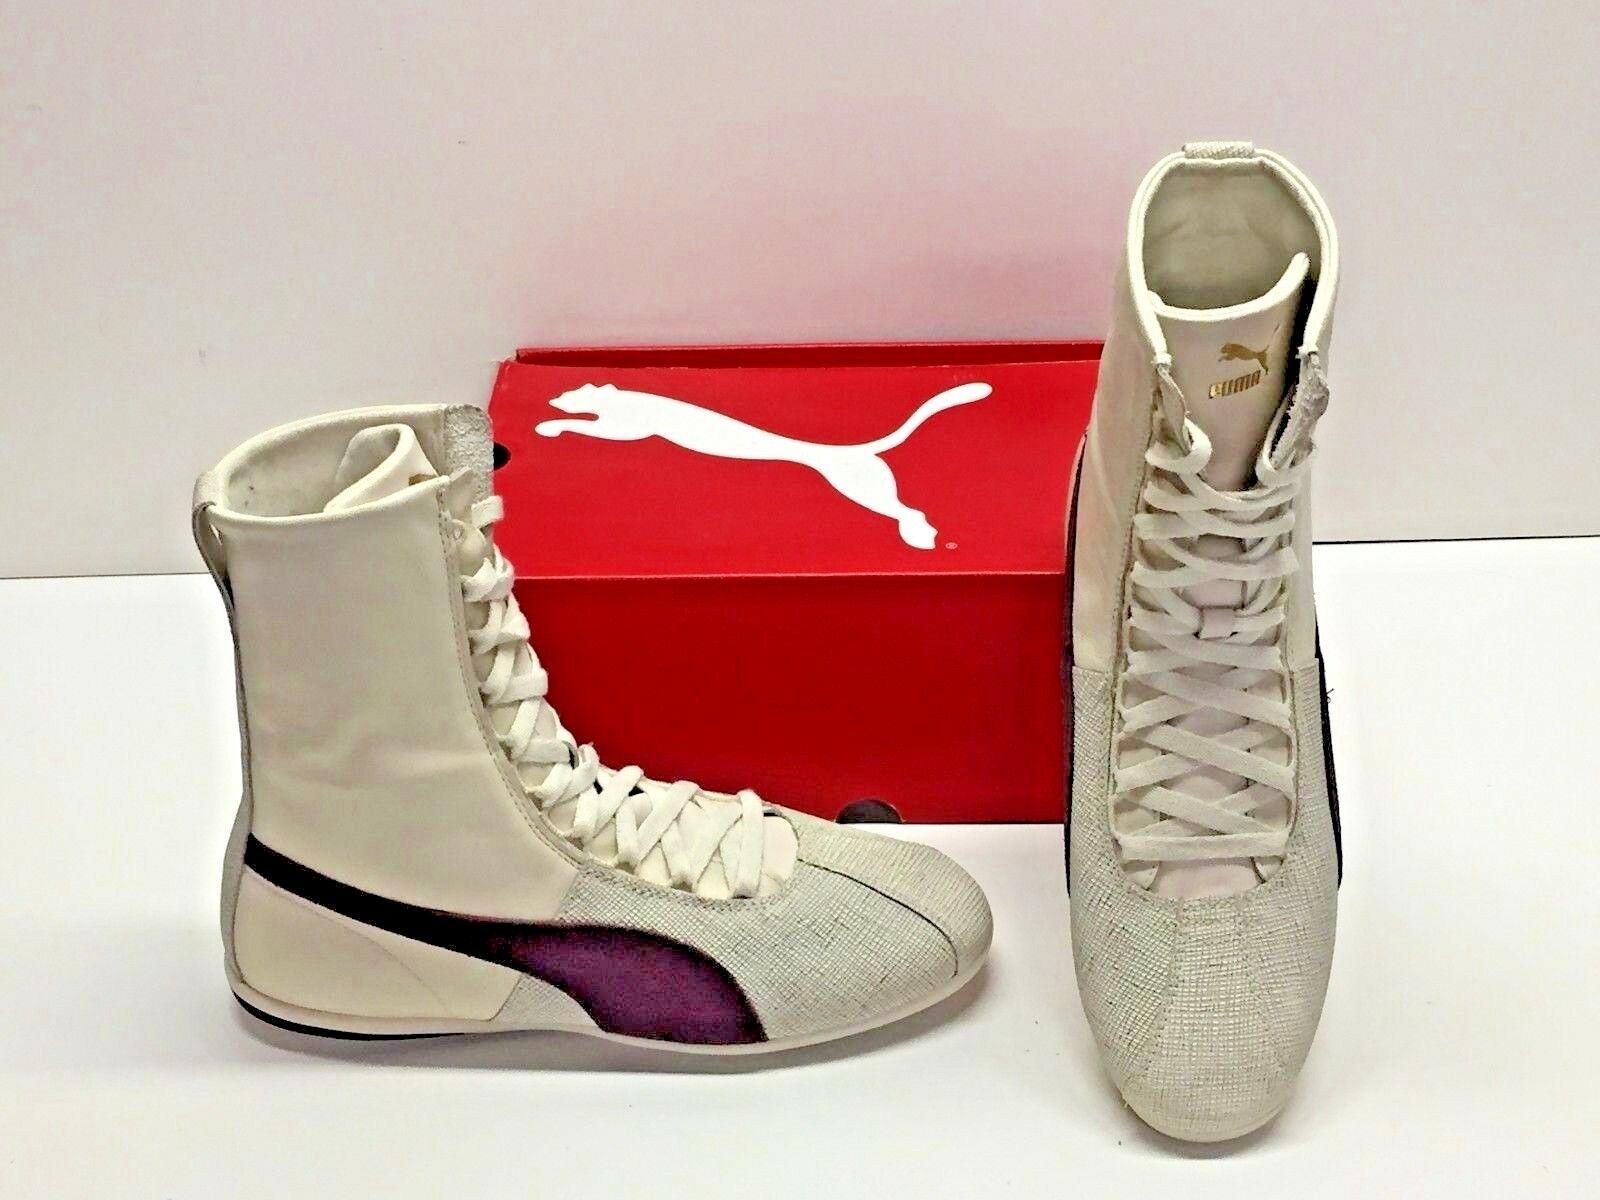 Puma Eskiva High Hi Remaster Off White Purple Fashion Sneakers shoes Womens 9